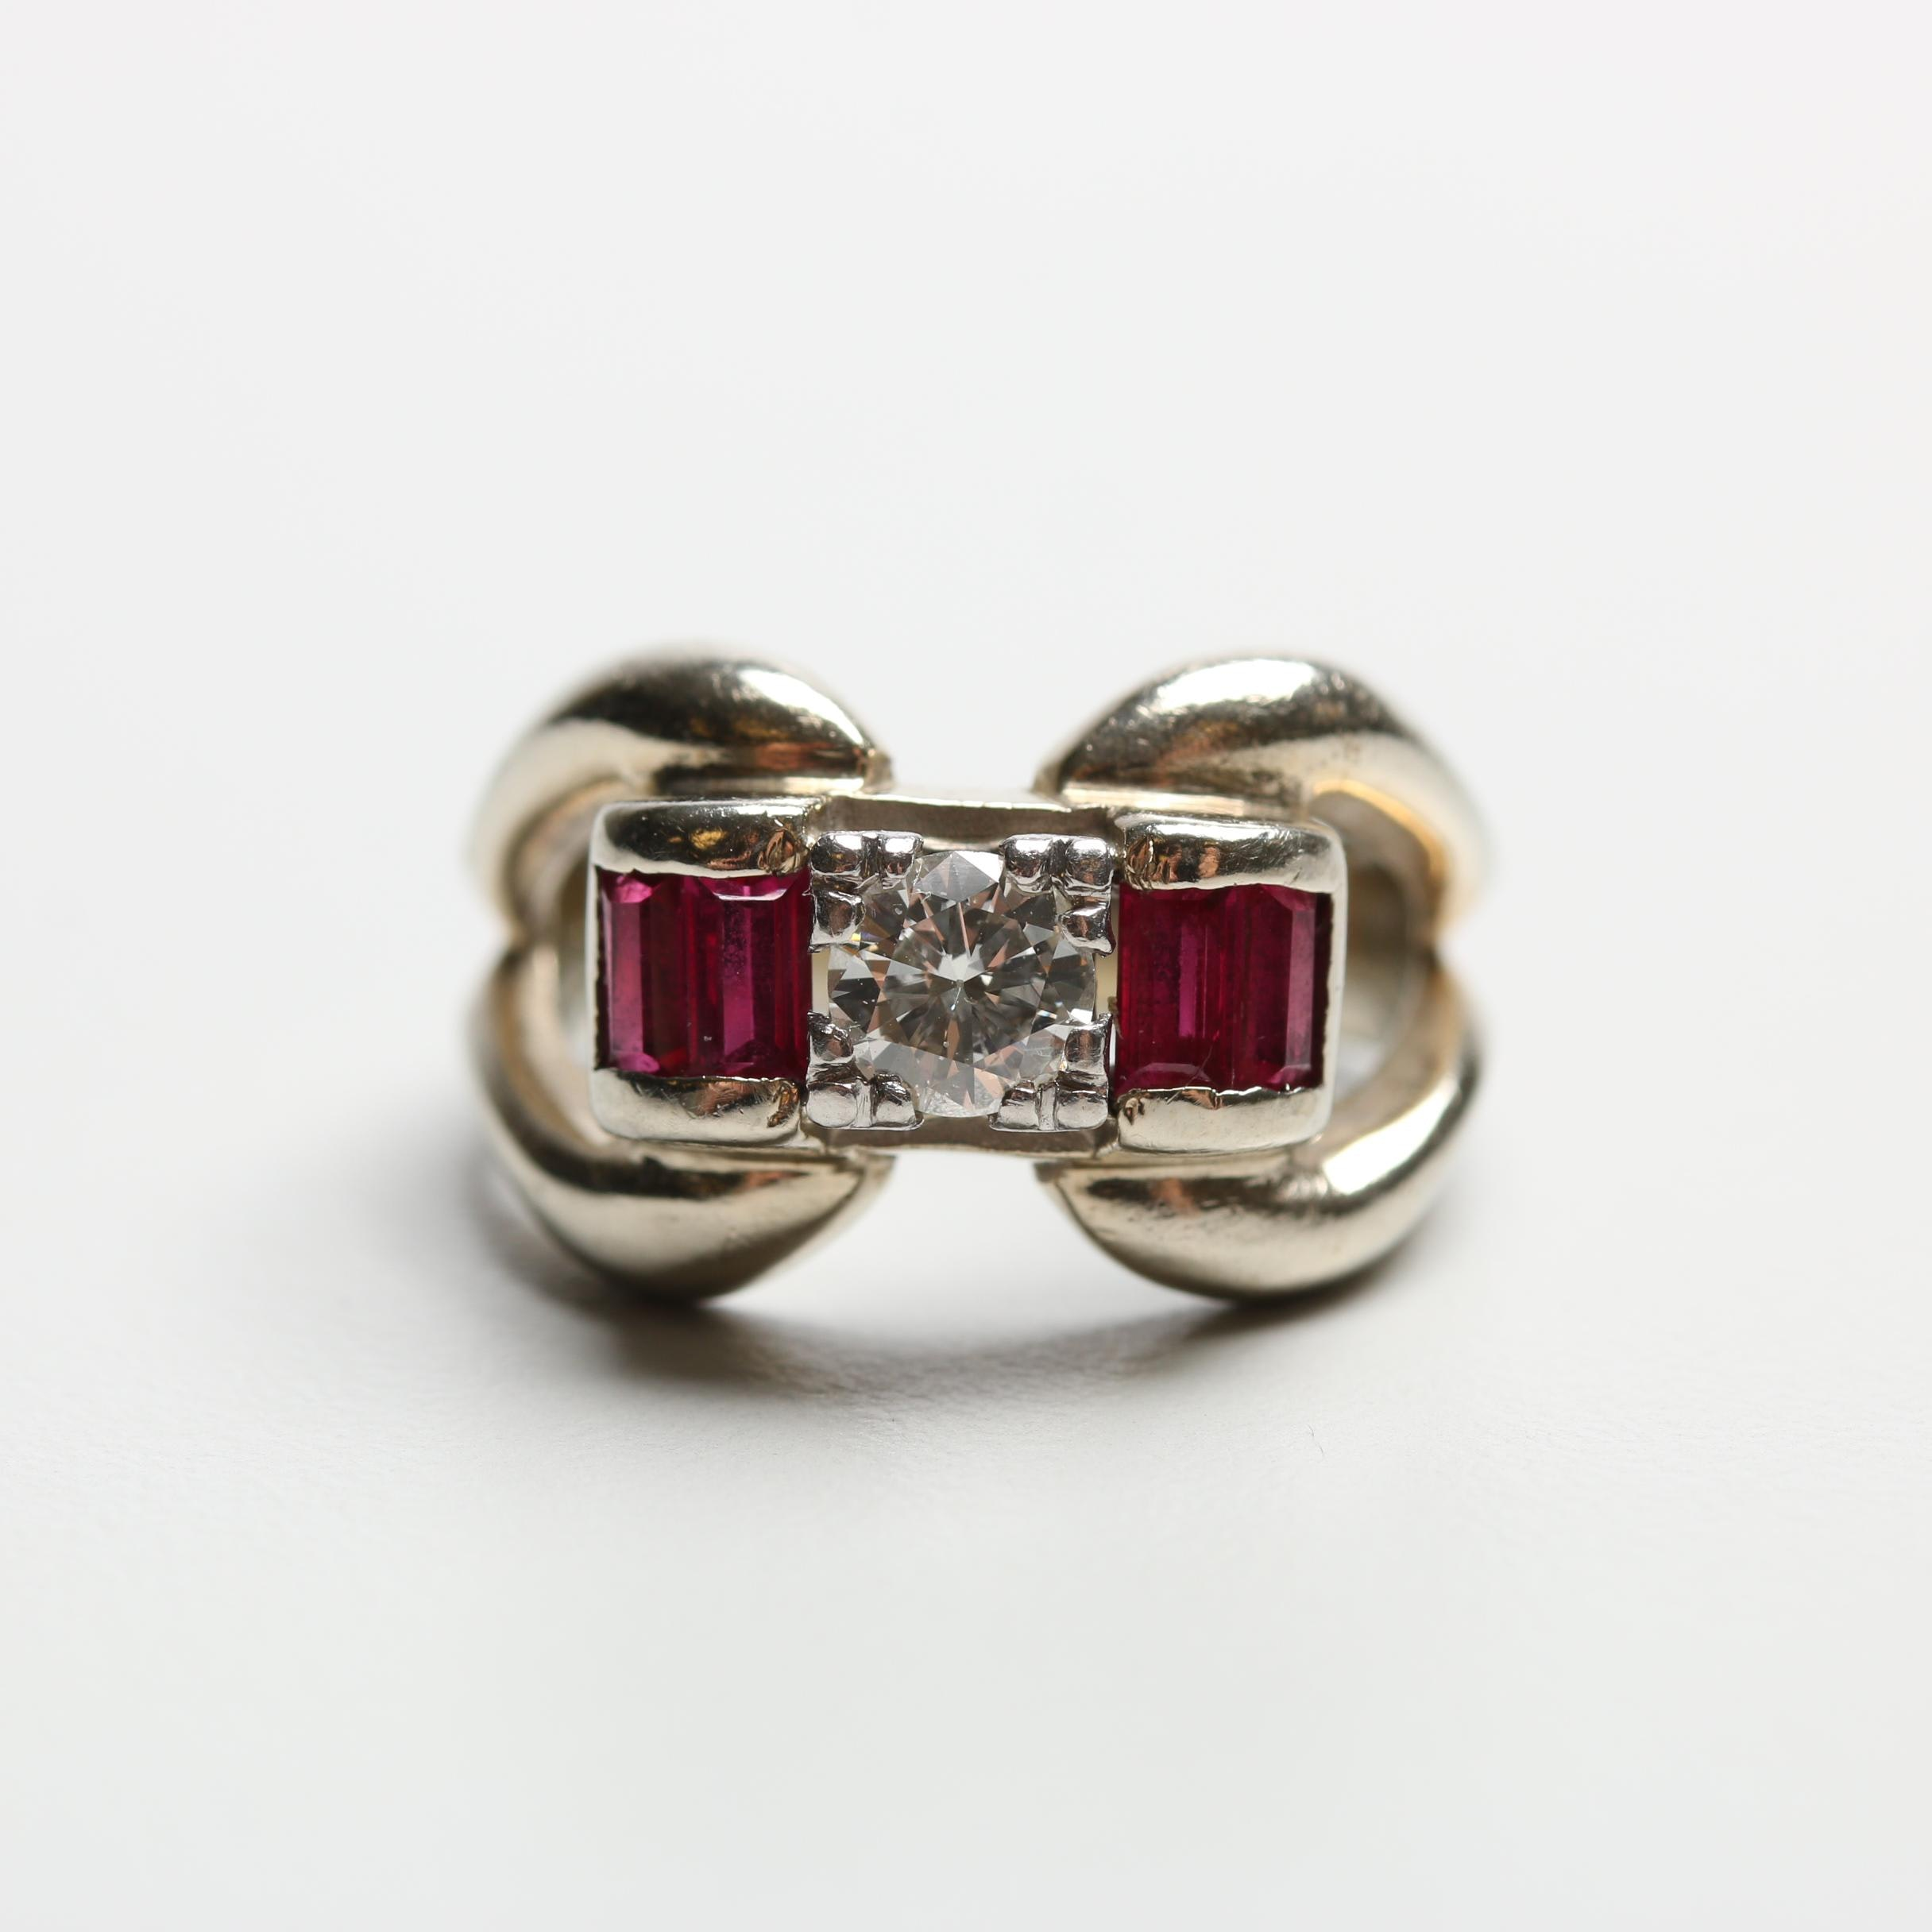 Retro 14K White Gold Diamond and Synthetic Ruby Ring with Palladium Setting